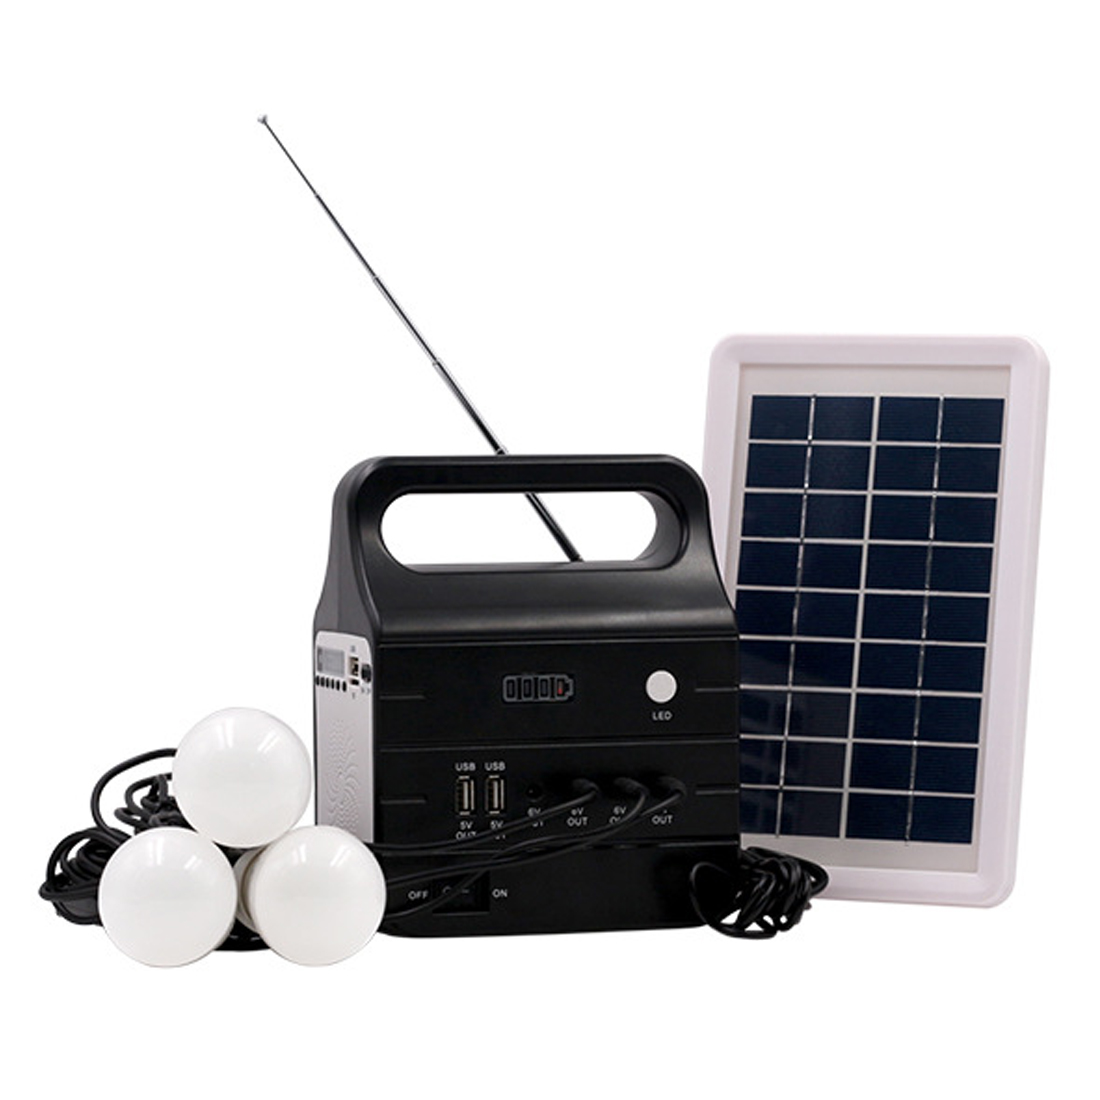 SOPATiO Portable Multifunctional Charger Solar Panel System Backup Power DIY Sun Power Solar Panel Kits For Yard/Caravan/Home